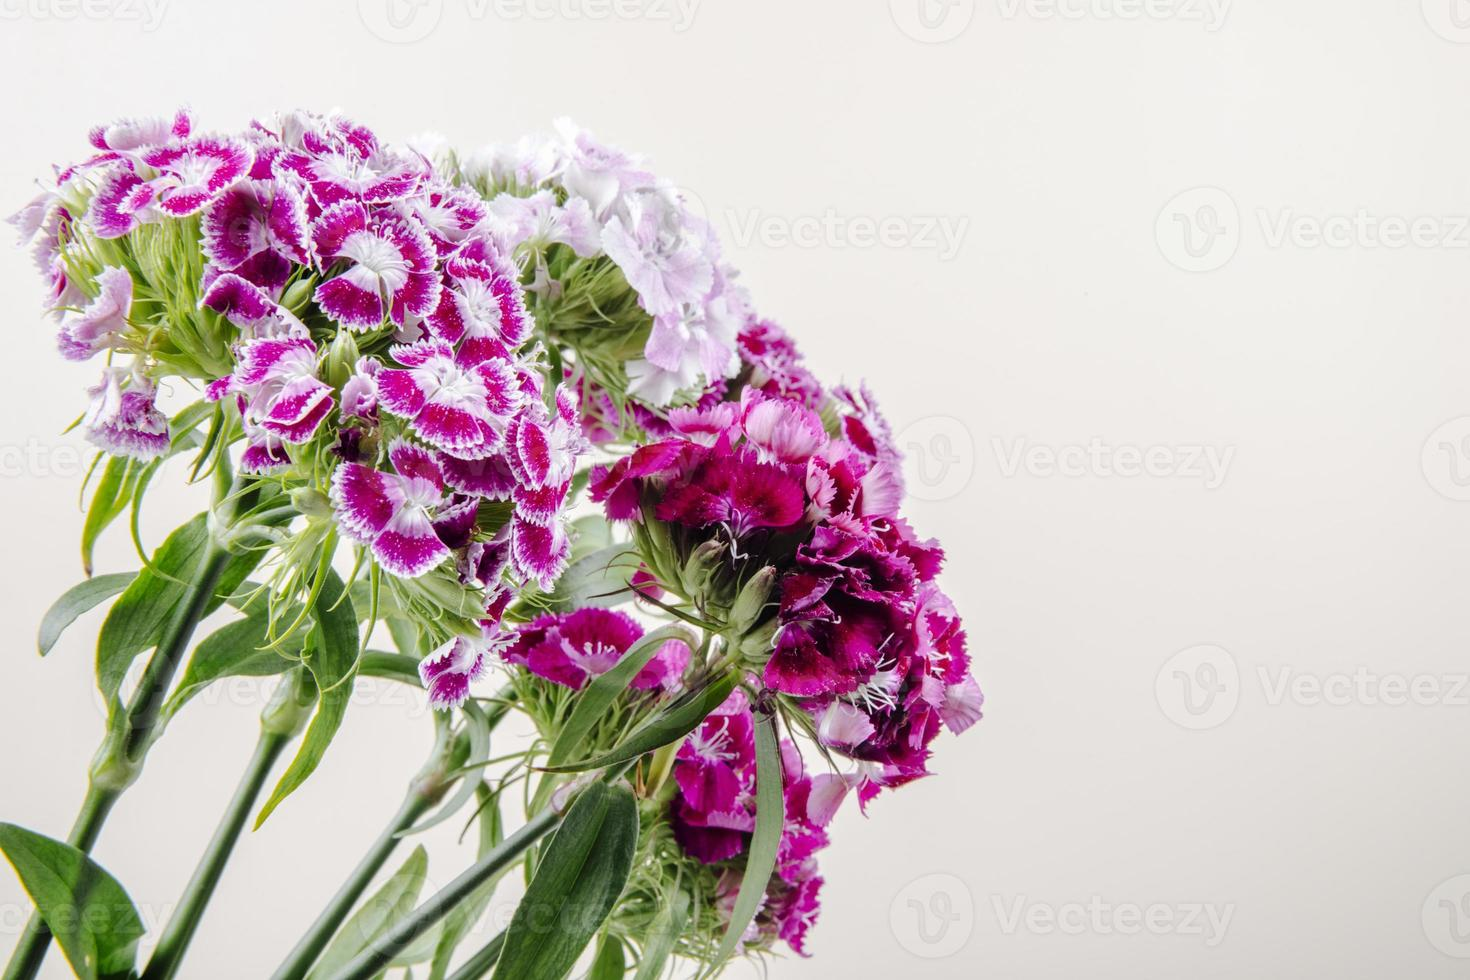 Carnations on a white background photo